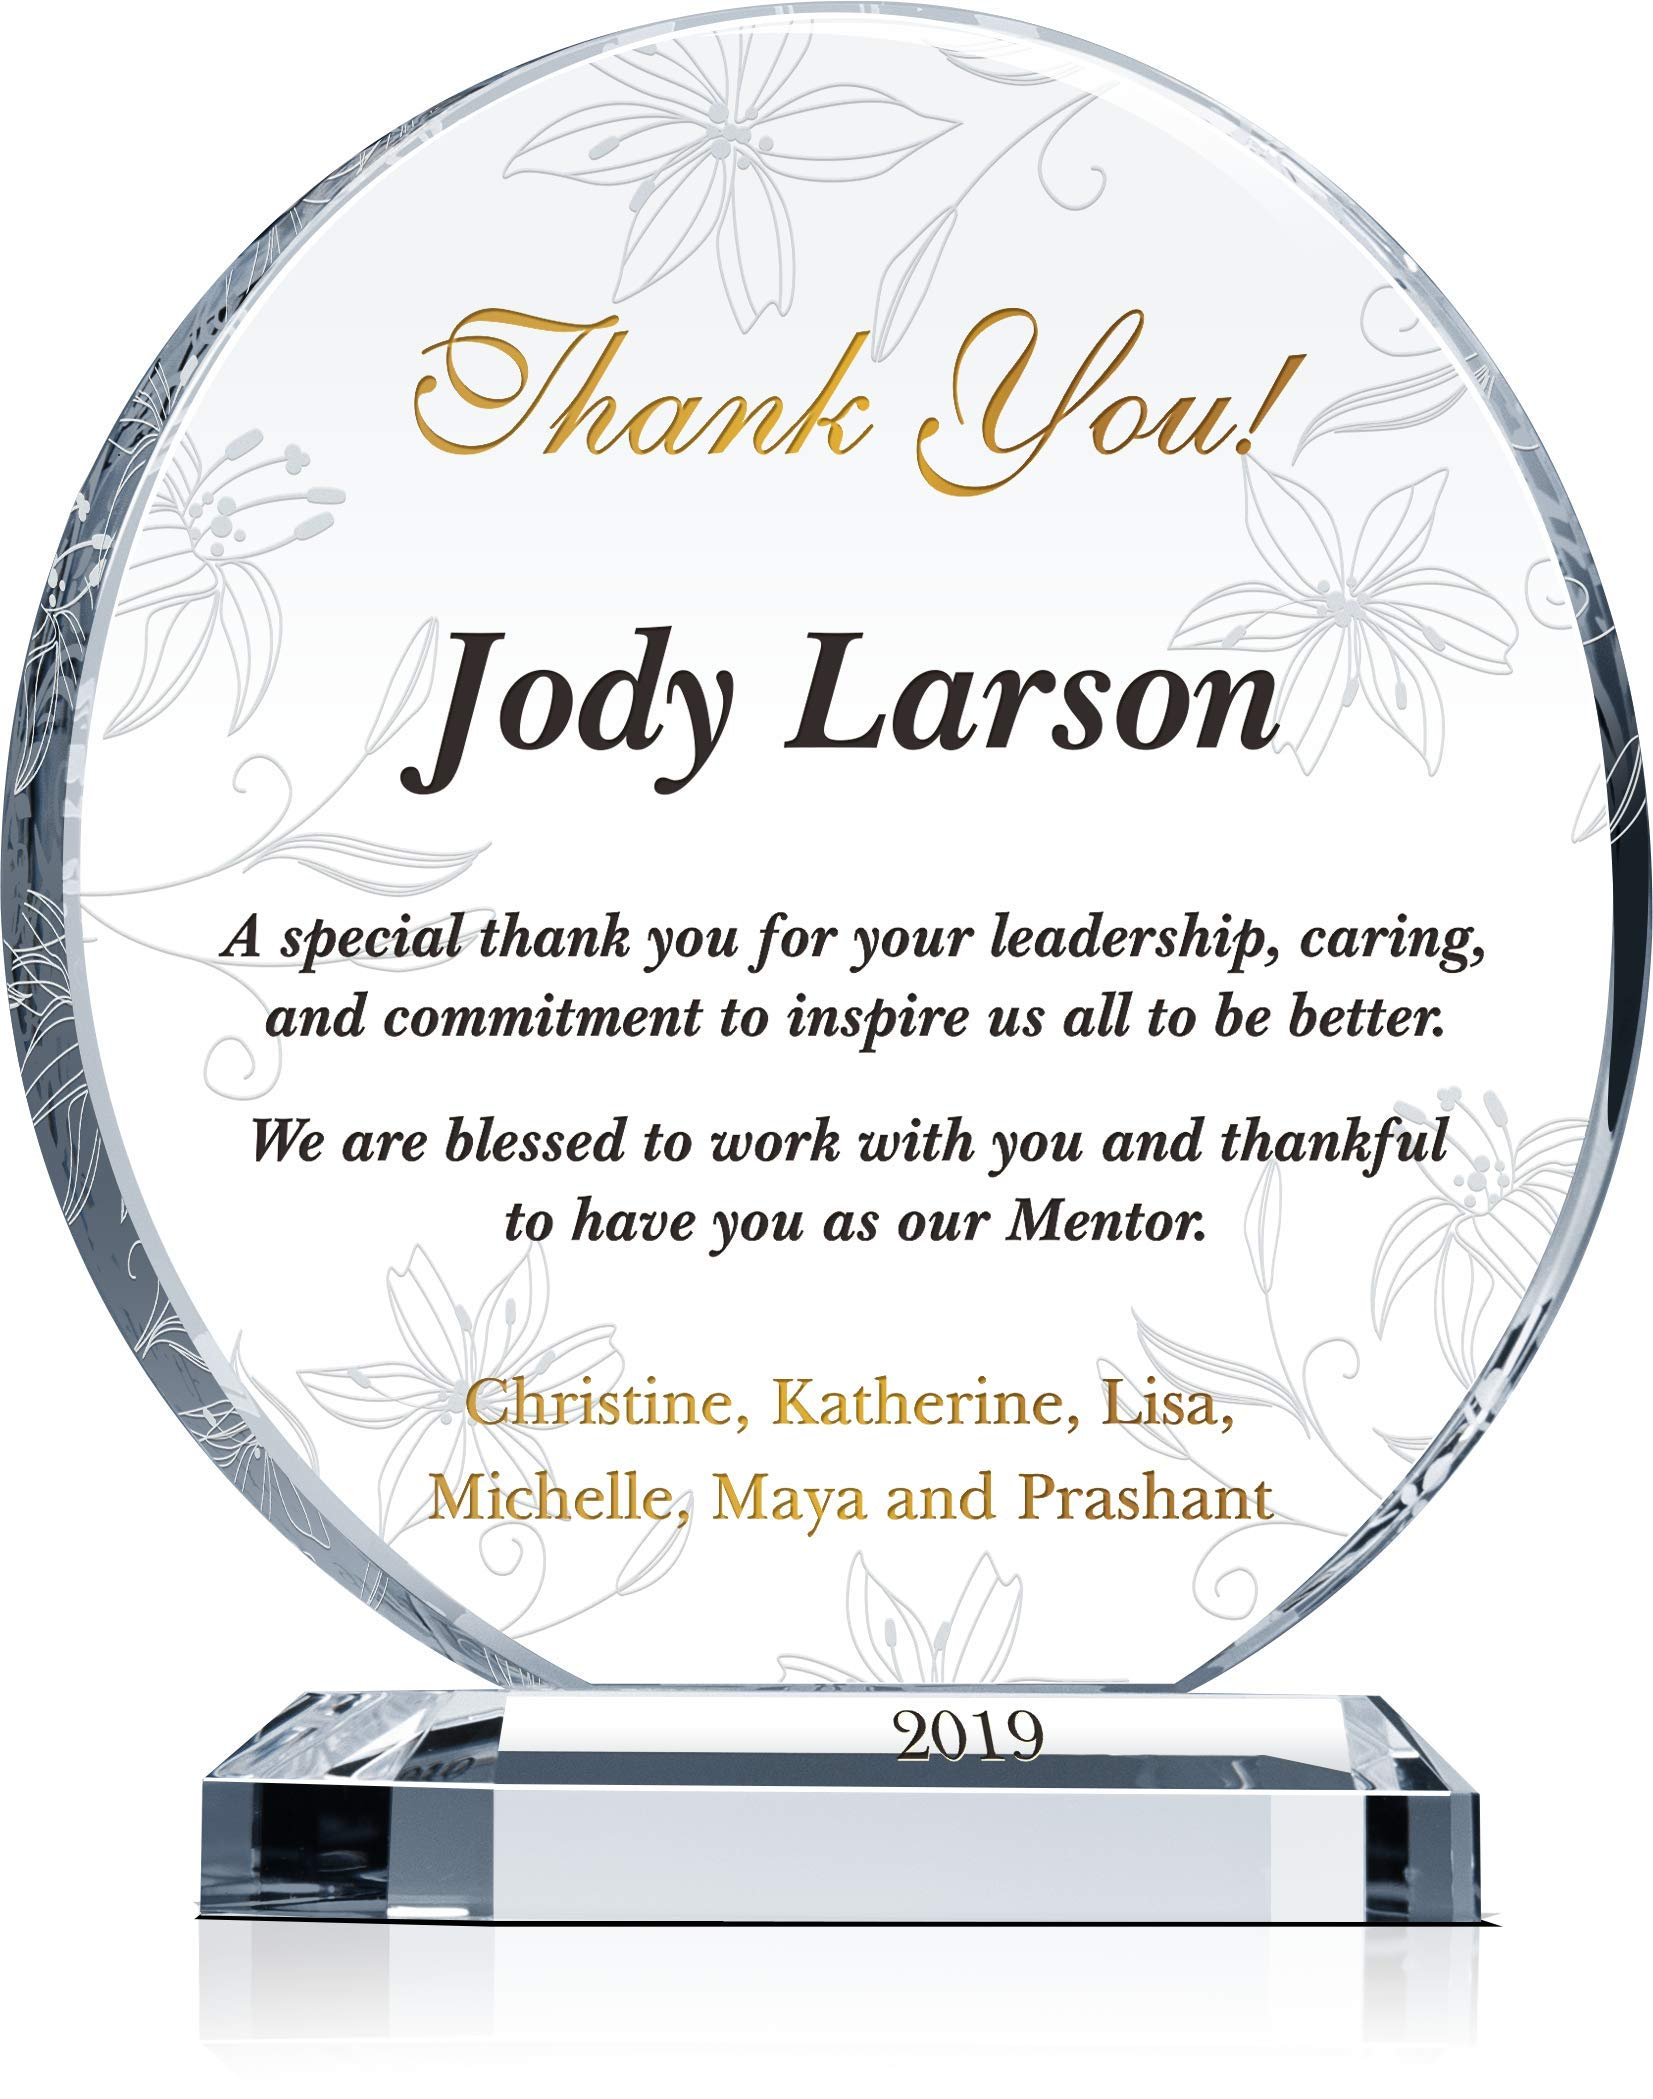 Personalized Crystal Appreciation Gift Plaque for Mentor, Manager, Supervisor, Leader, Customized with Mentor Name, Unique Thank You Gift to Boss on Christmas, Birthday, Departing (XL - 10'') by Crystal Central